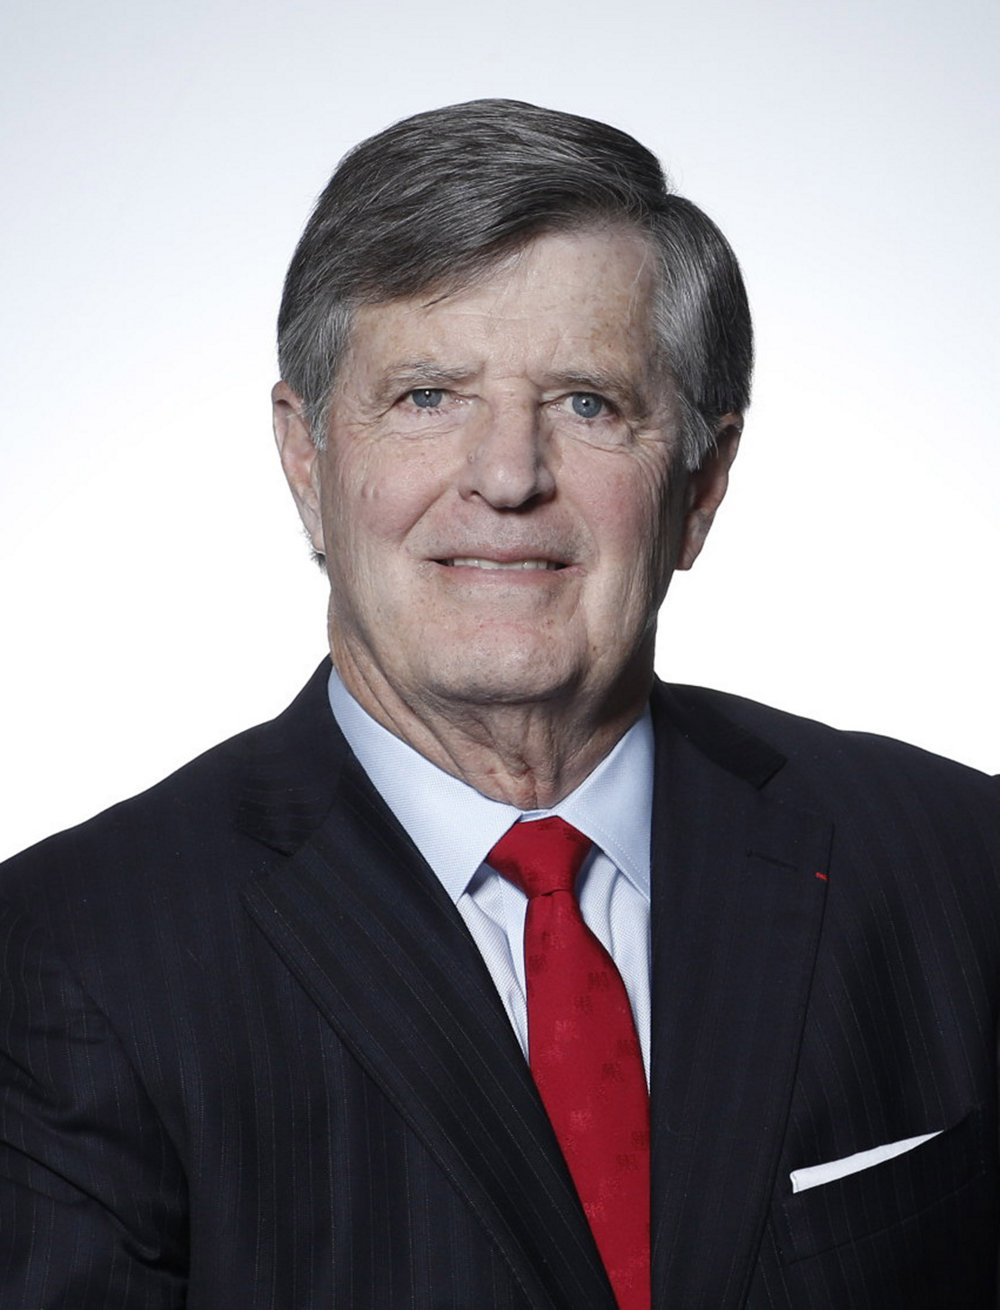 Ralph D. Crosby, Member of the Board of Directors of Serco Group, PLC